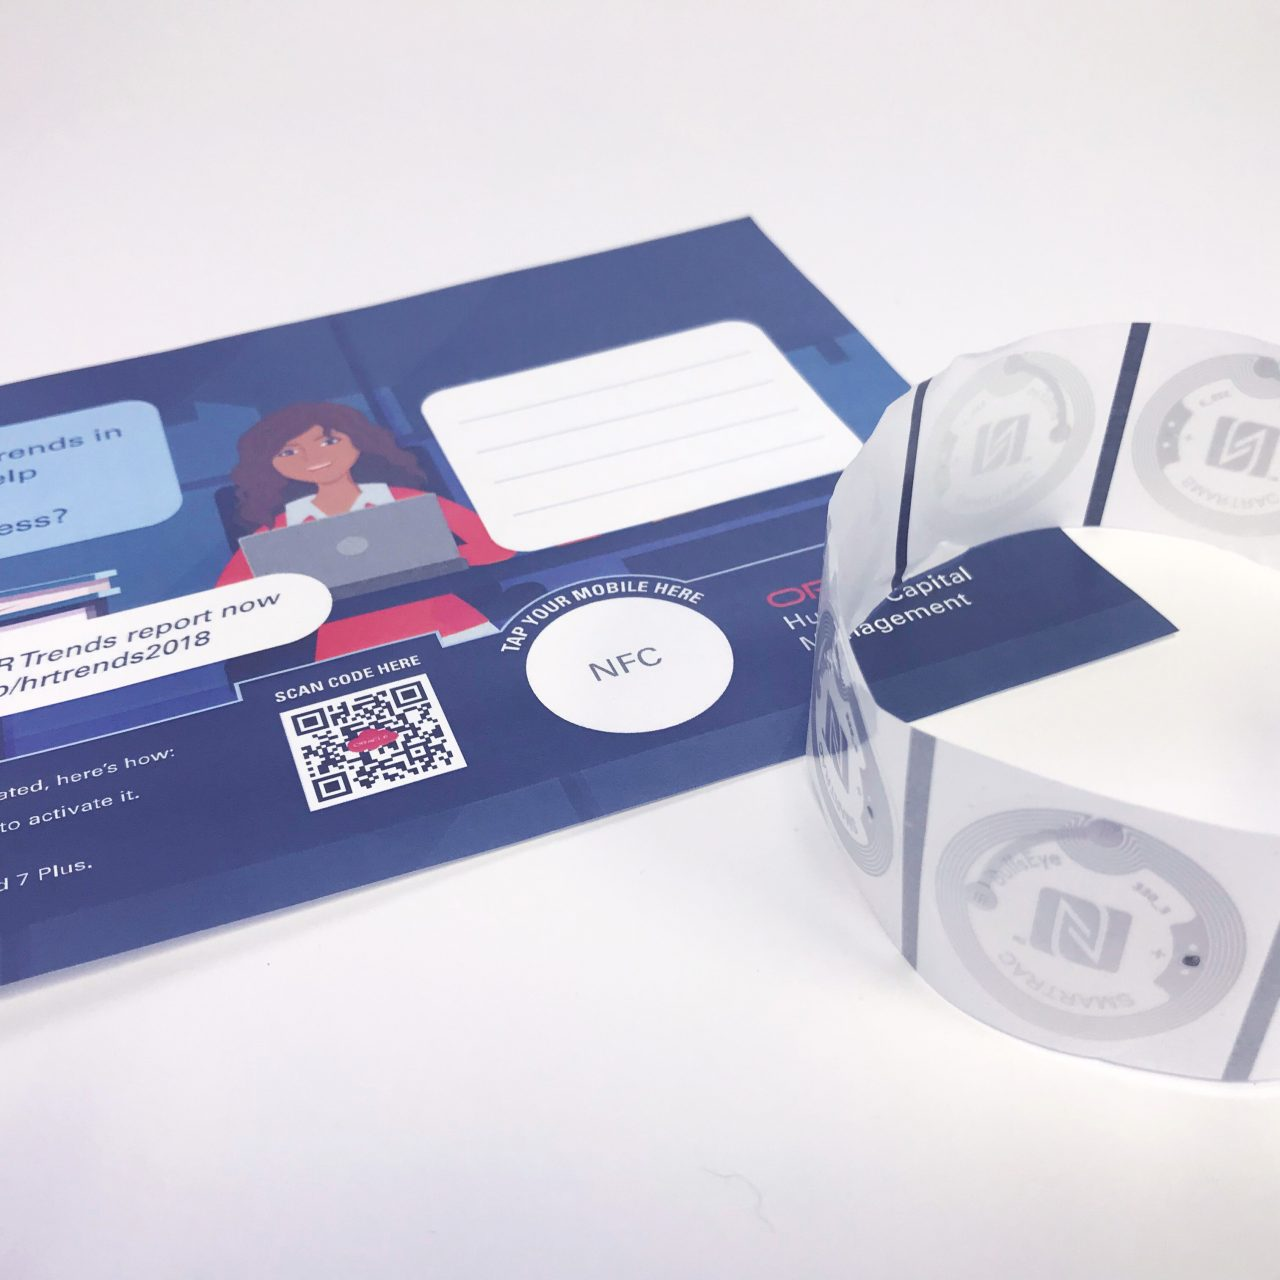 NFC Printing   Add Near Field Communication to Your Printing